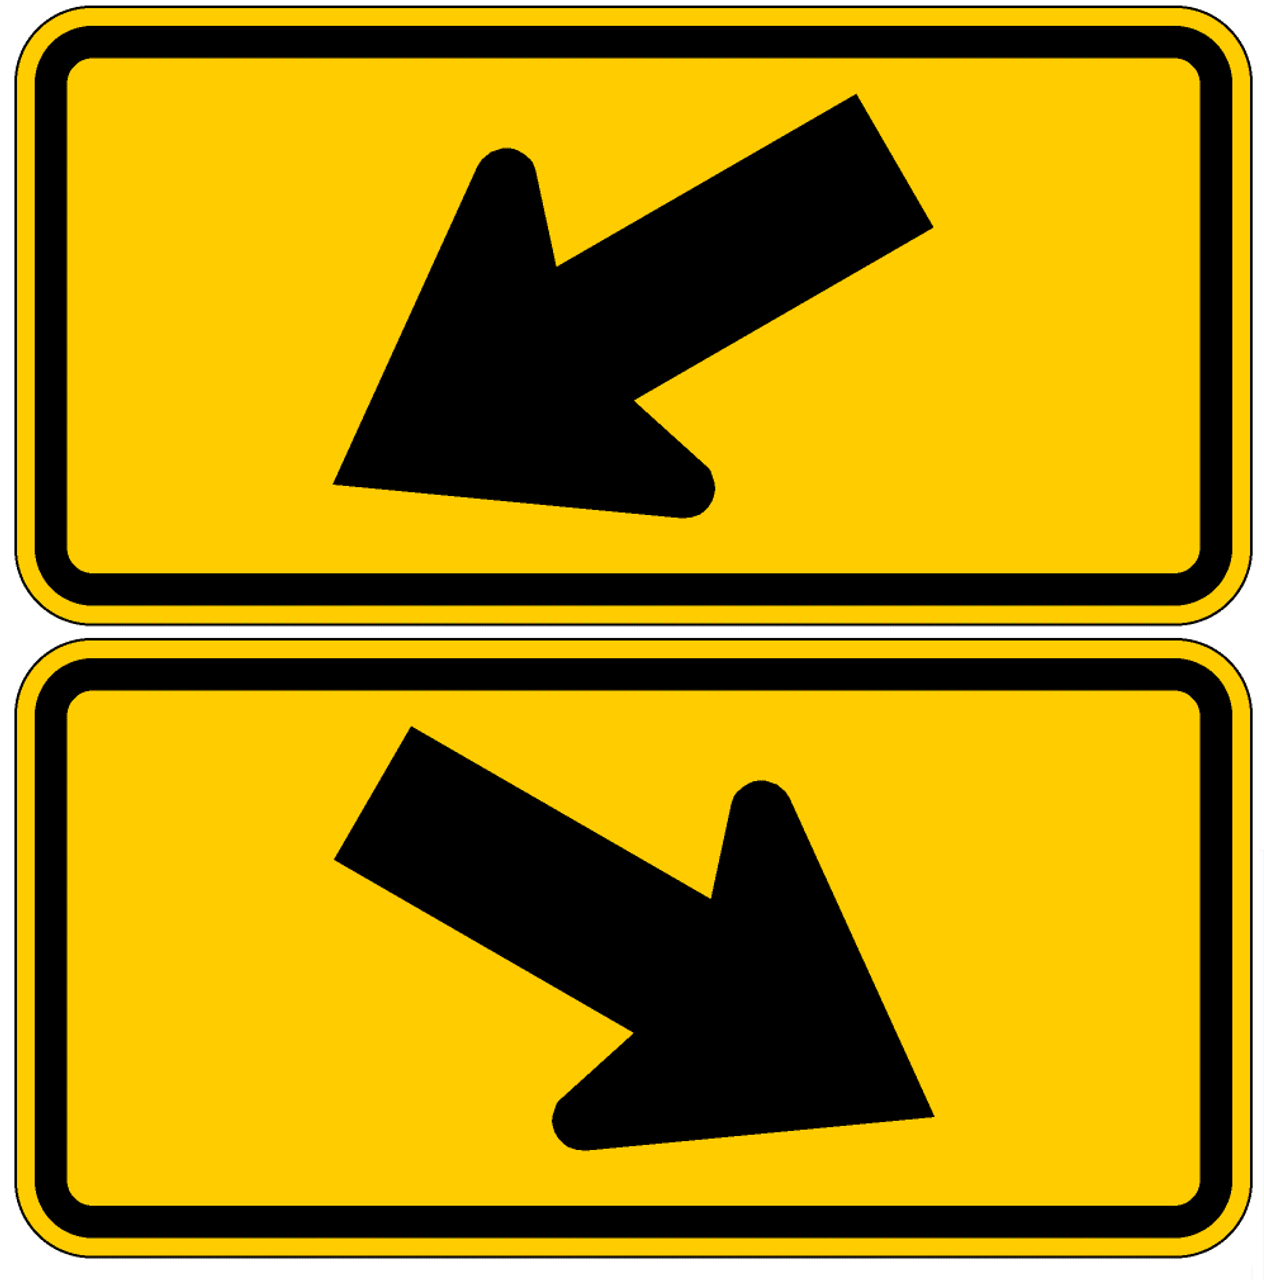 Keep Left or Keep Right with Arrow 12 x 18 Aluminum Sign